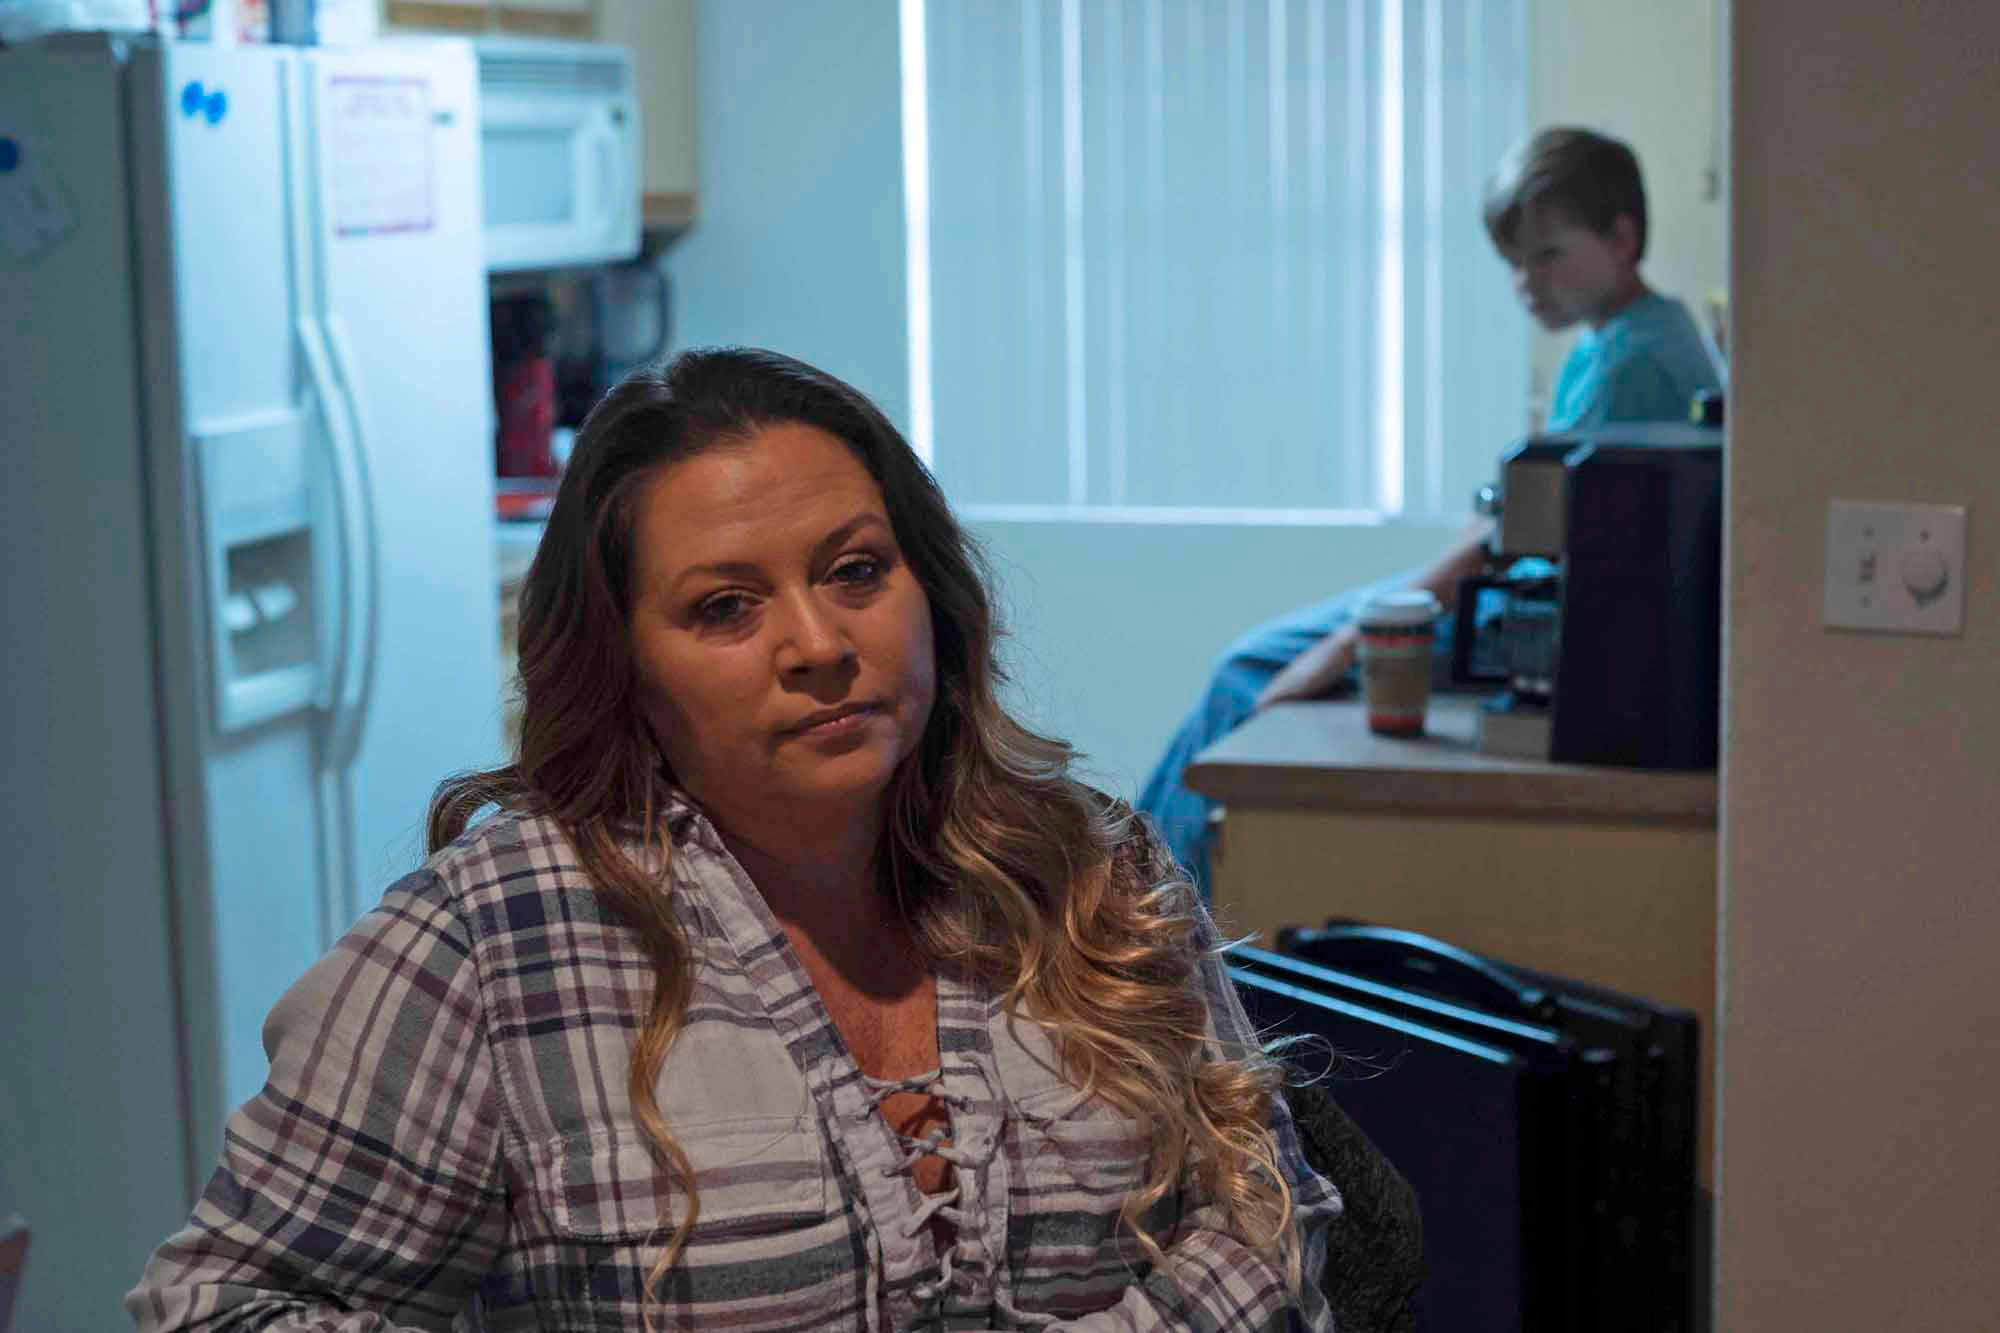 Waitress Teresa Trabucco can only work weekends when her son isn't in class. She's falling behind on rent and considering moving out of state.